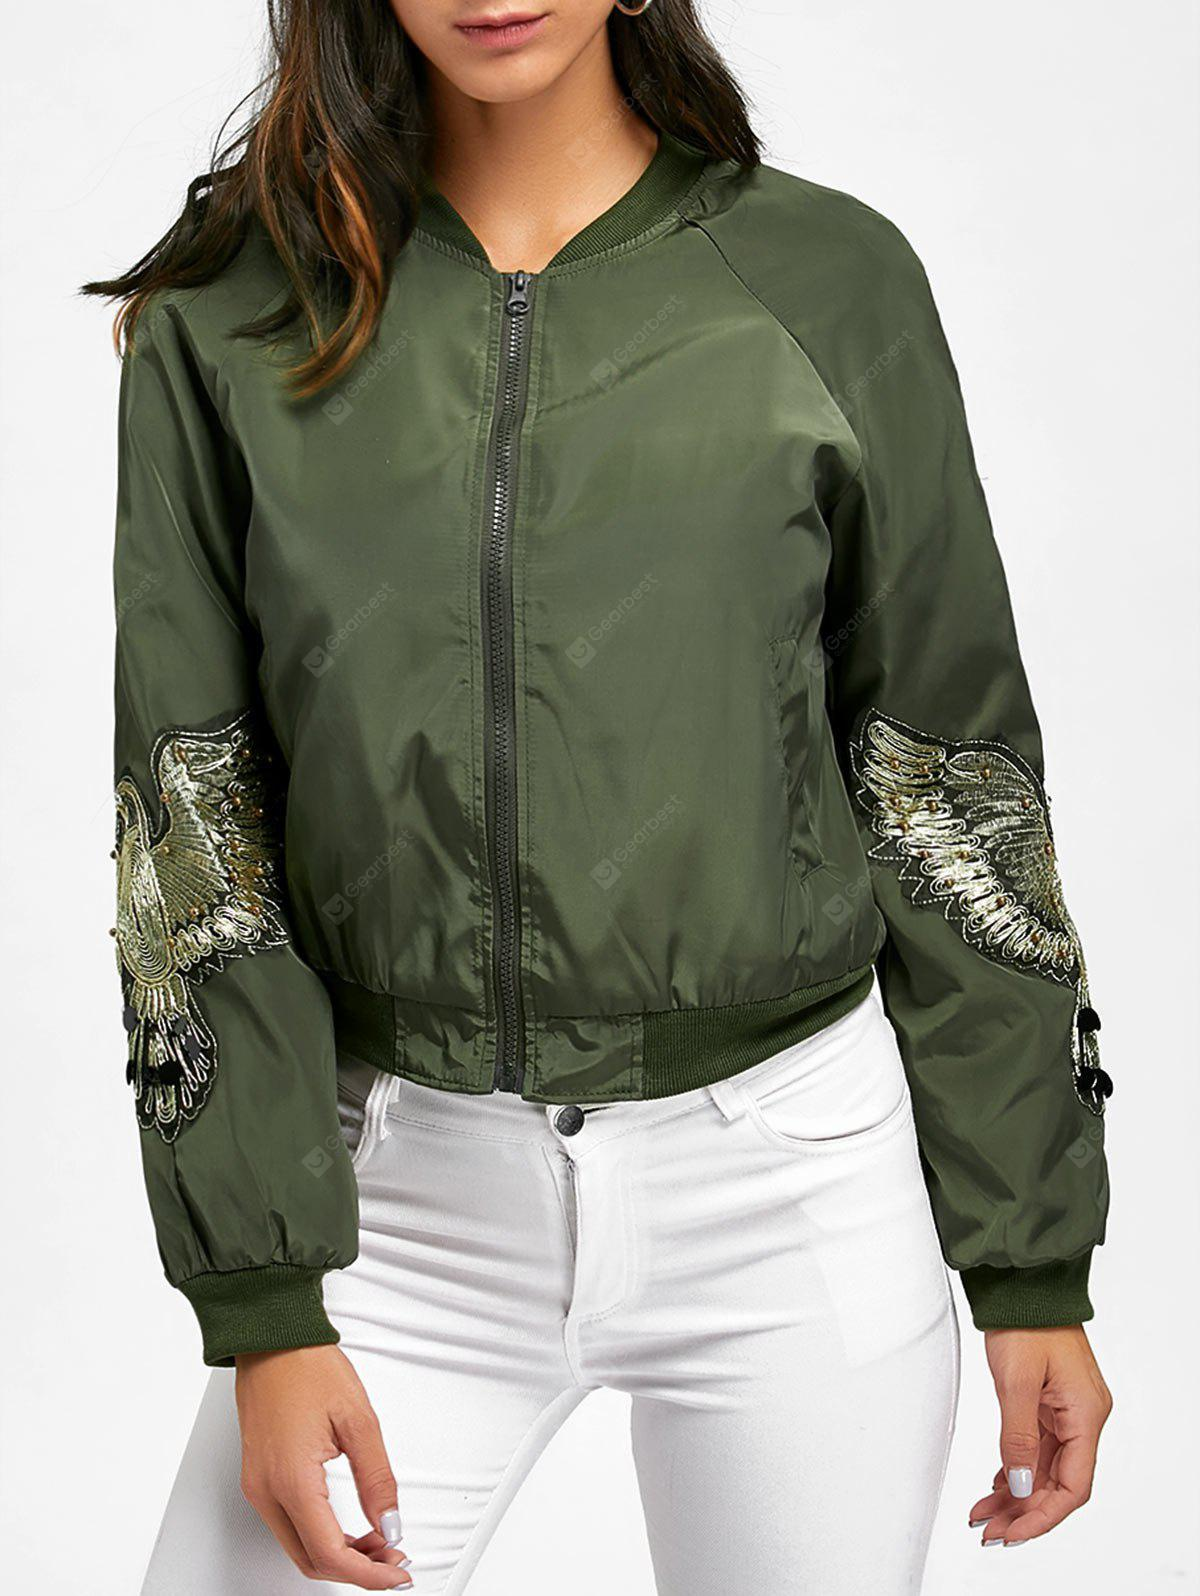 Bird Embroidered Baseball Jacket